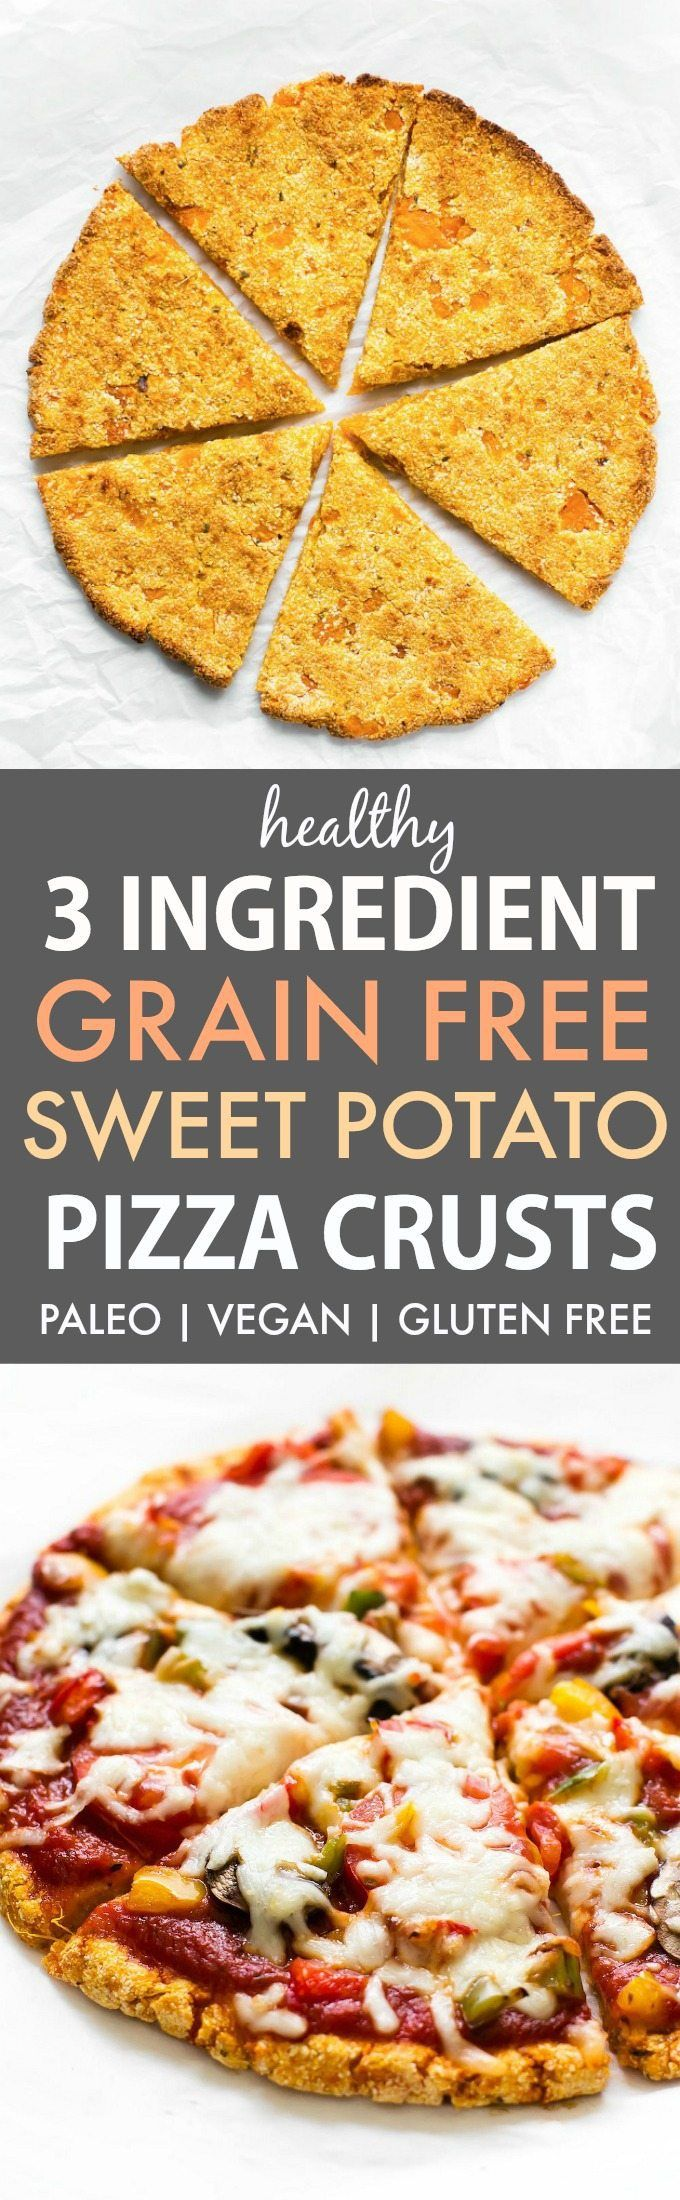 3 Ingredient Sweet Potato Pizza Crusts (Paleo, Vegan, Gluten Free)- An easy, 3 ingredient stovetop pizza crust recipe made with NO grains, NO cauliflower and NO eggs! - thebigmansworld.com #paleopizza #grainfreepizza #sweetpotato